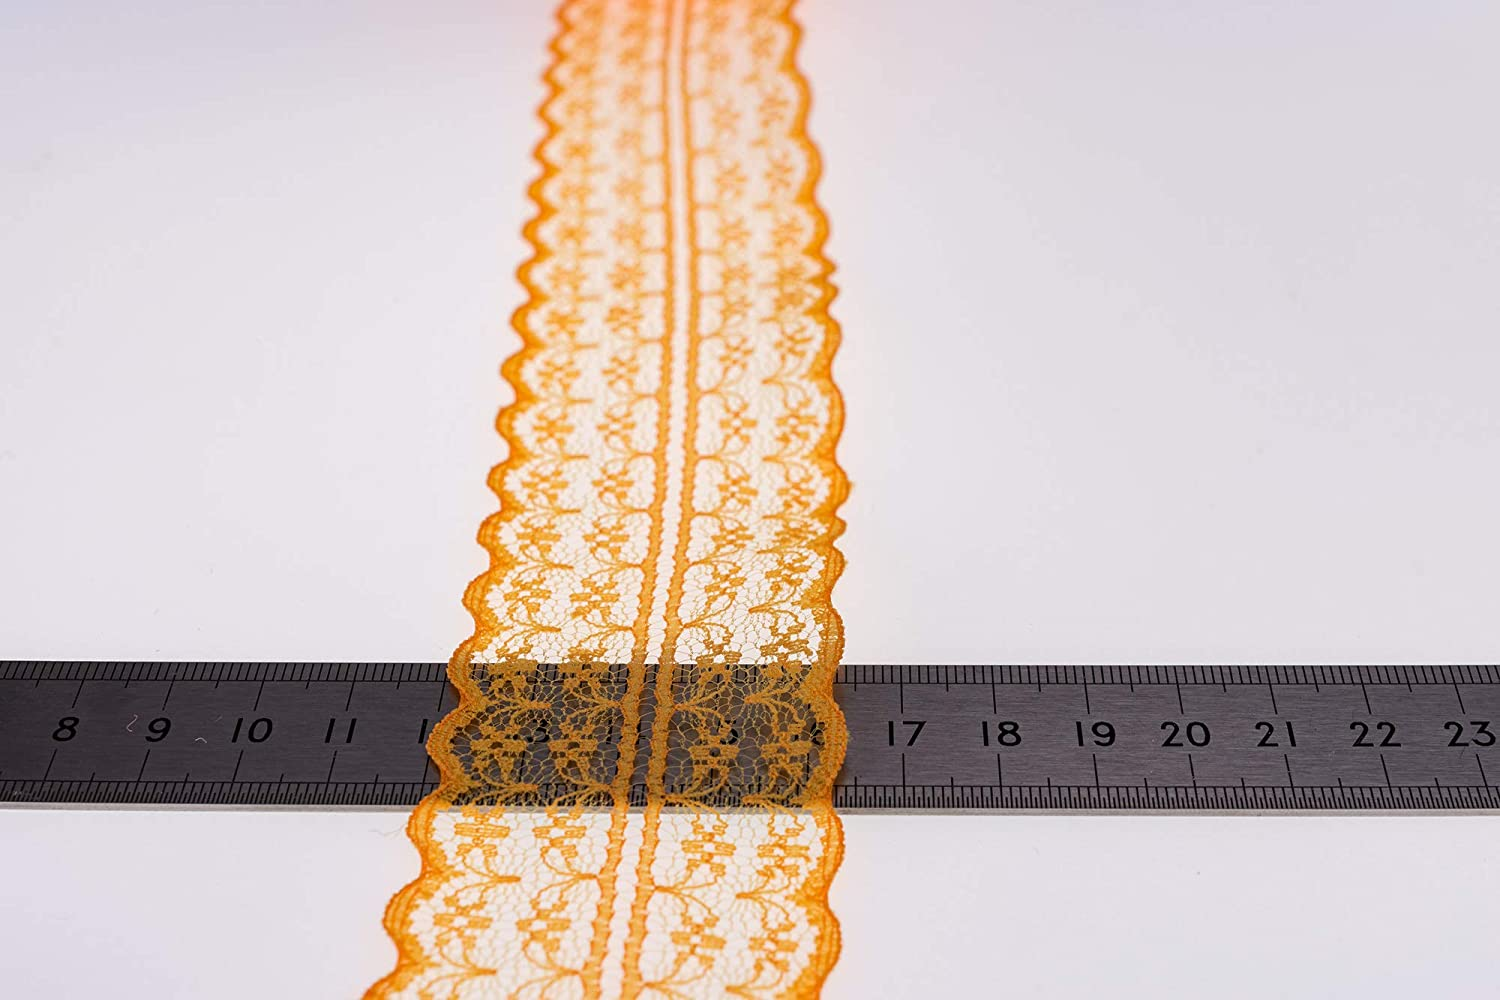 Orange ATRibbons 25 Yards 1-3//4 Inch Wide Floral Pattern Lace Trim Roll Colorful Lace Fabric Ribbon for Sewing Making,Gift Wrapping and Bridal Wedding Decorations